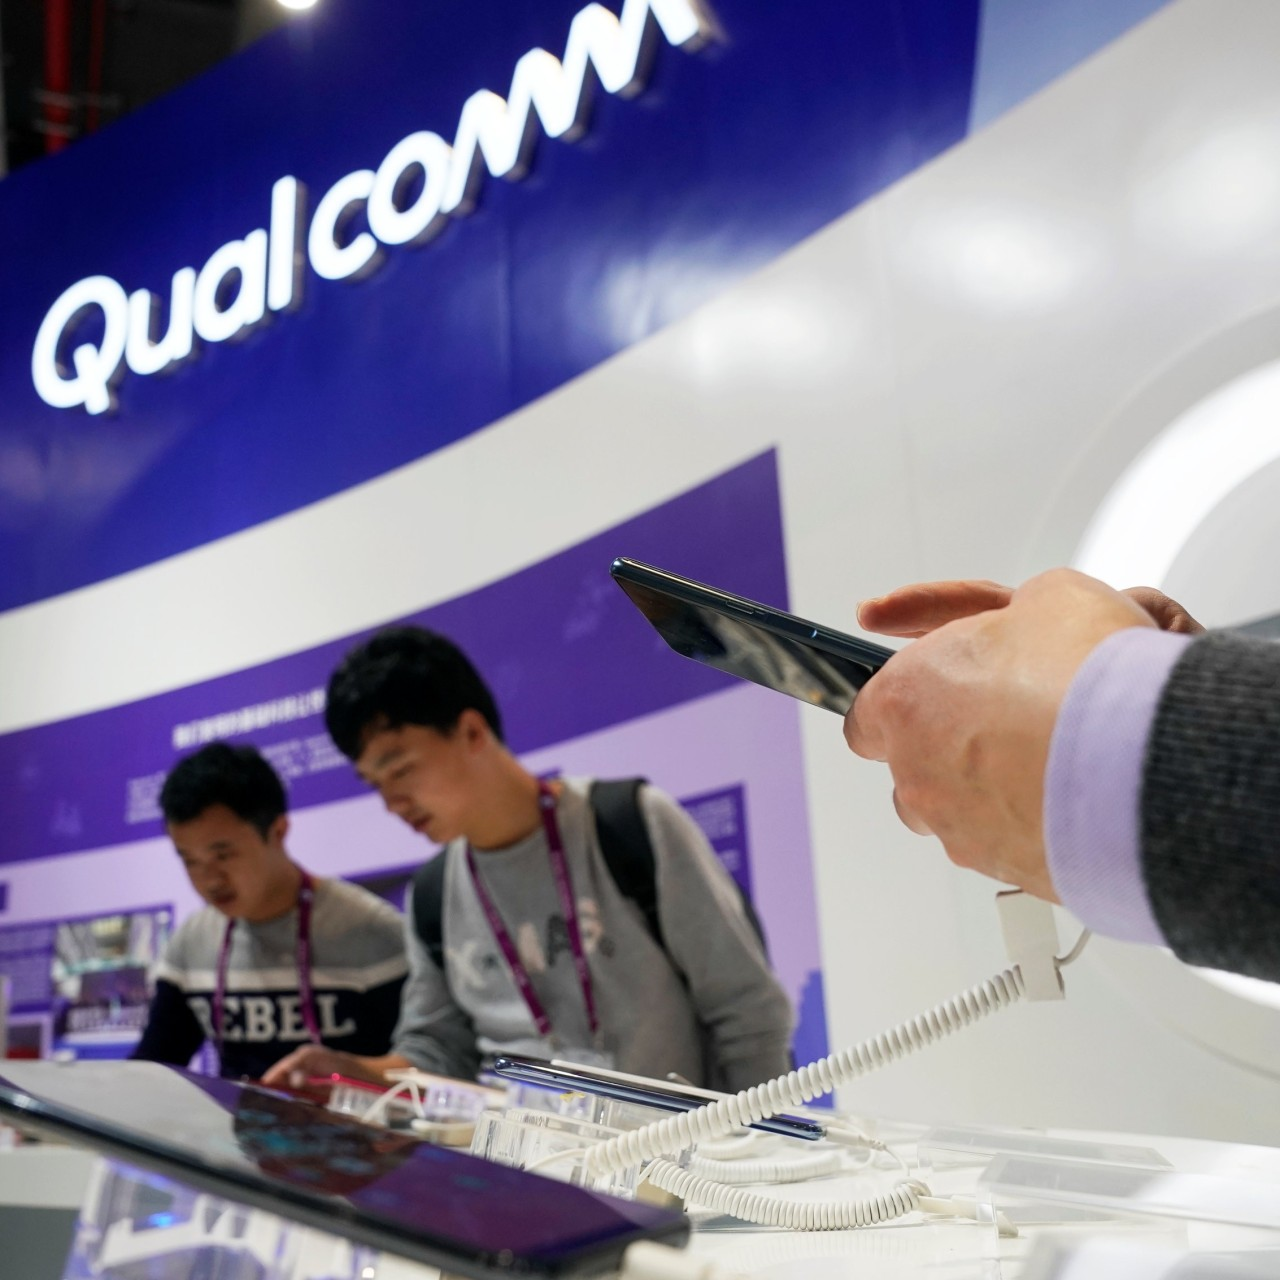 Qualcomm claims 5G leadership in new phones coming this year